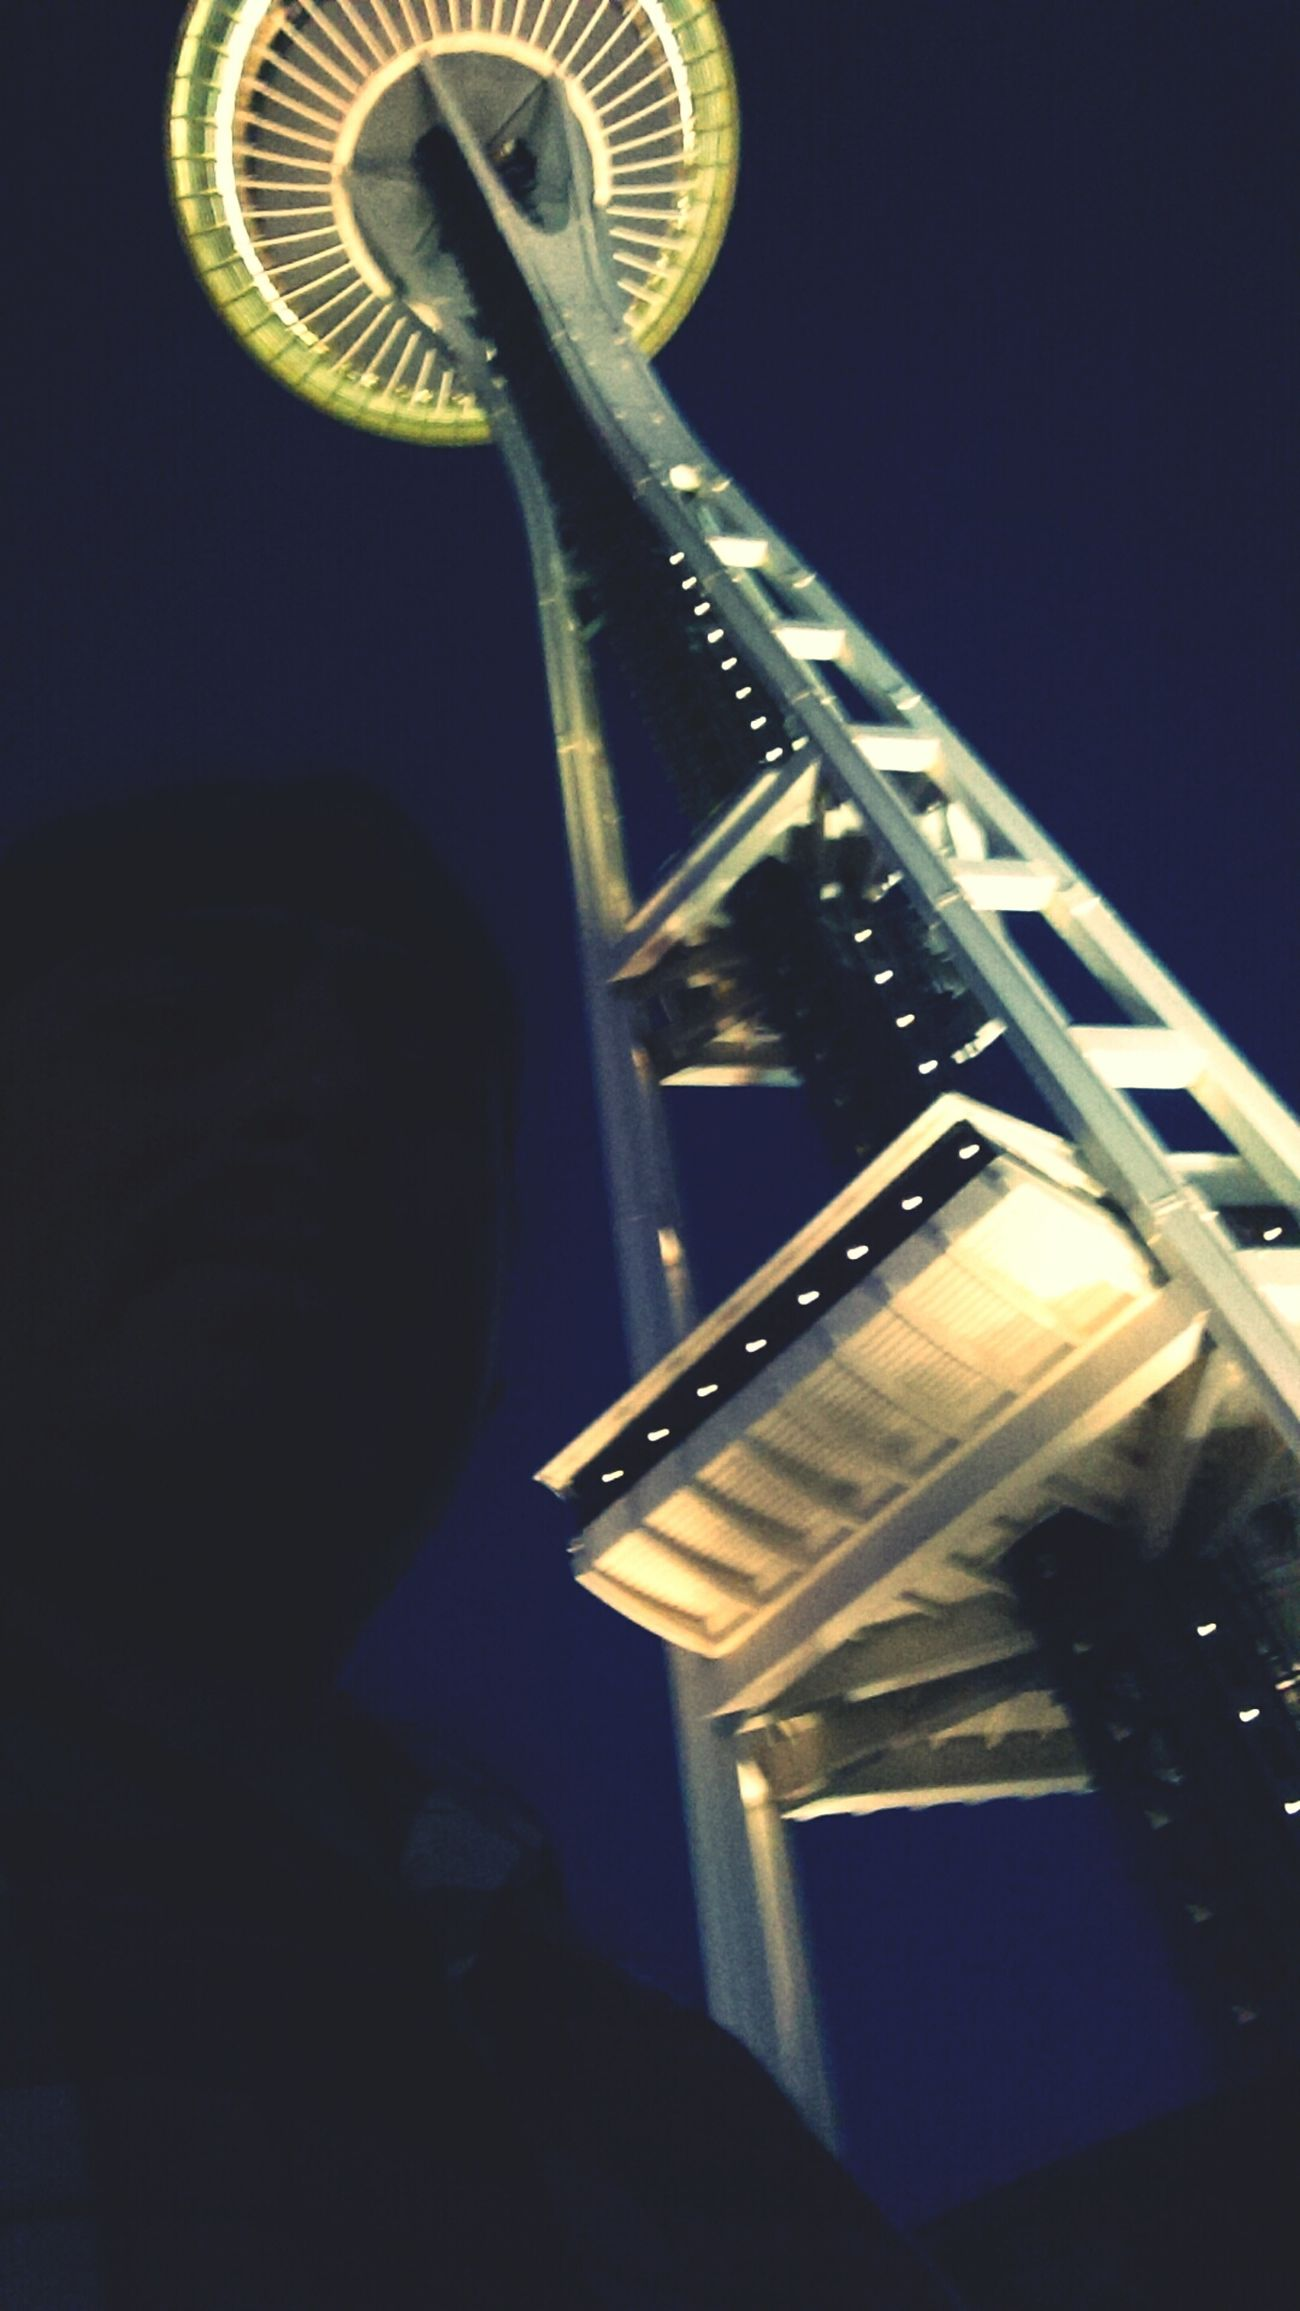 Space needle at night. Walking Around That's Me